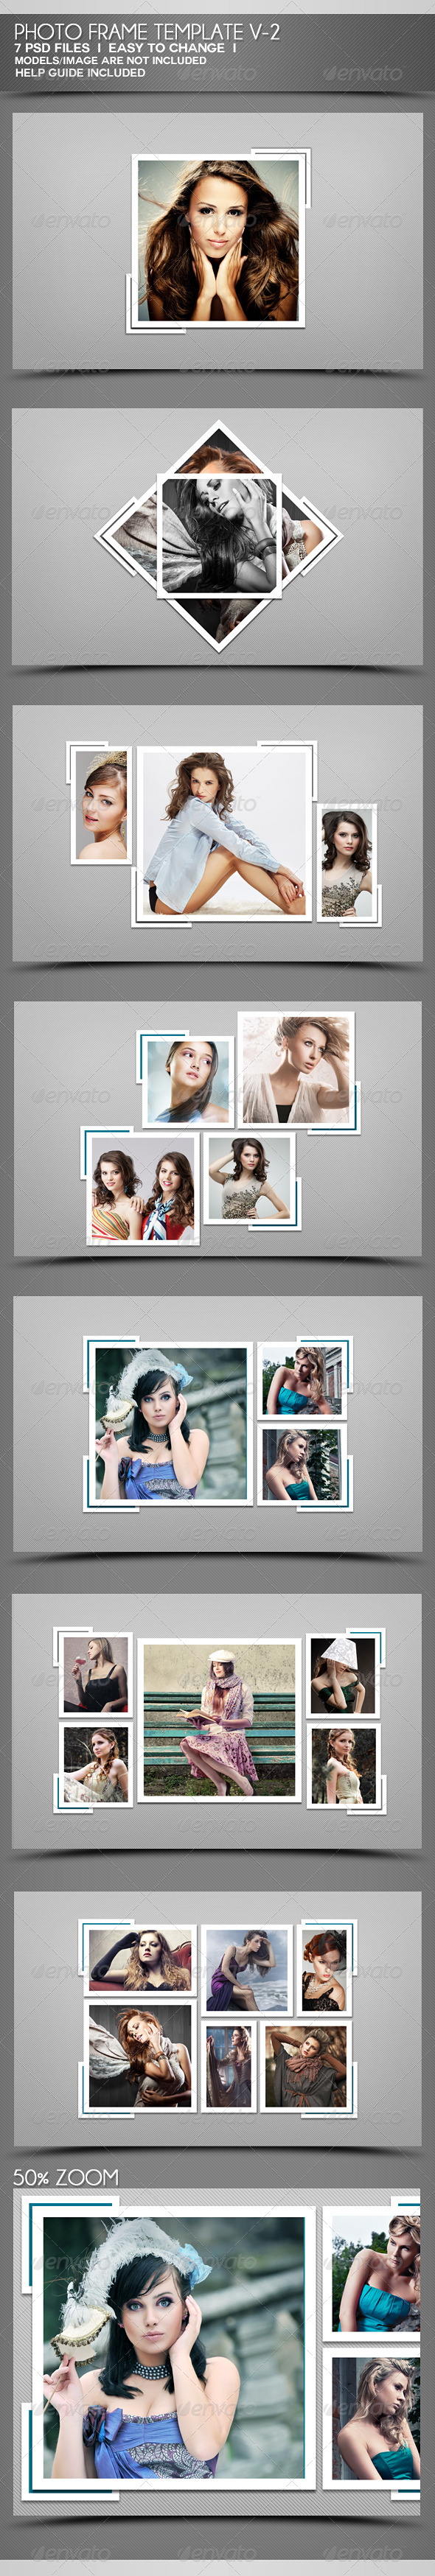 Photo Frame Templates V-2 - Miscellaneous Photo Templates